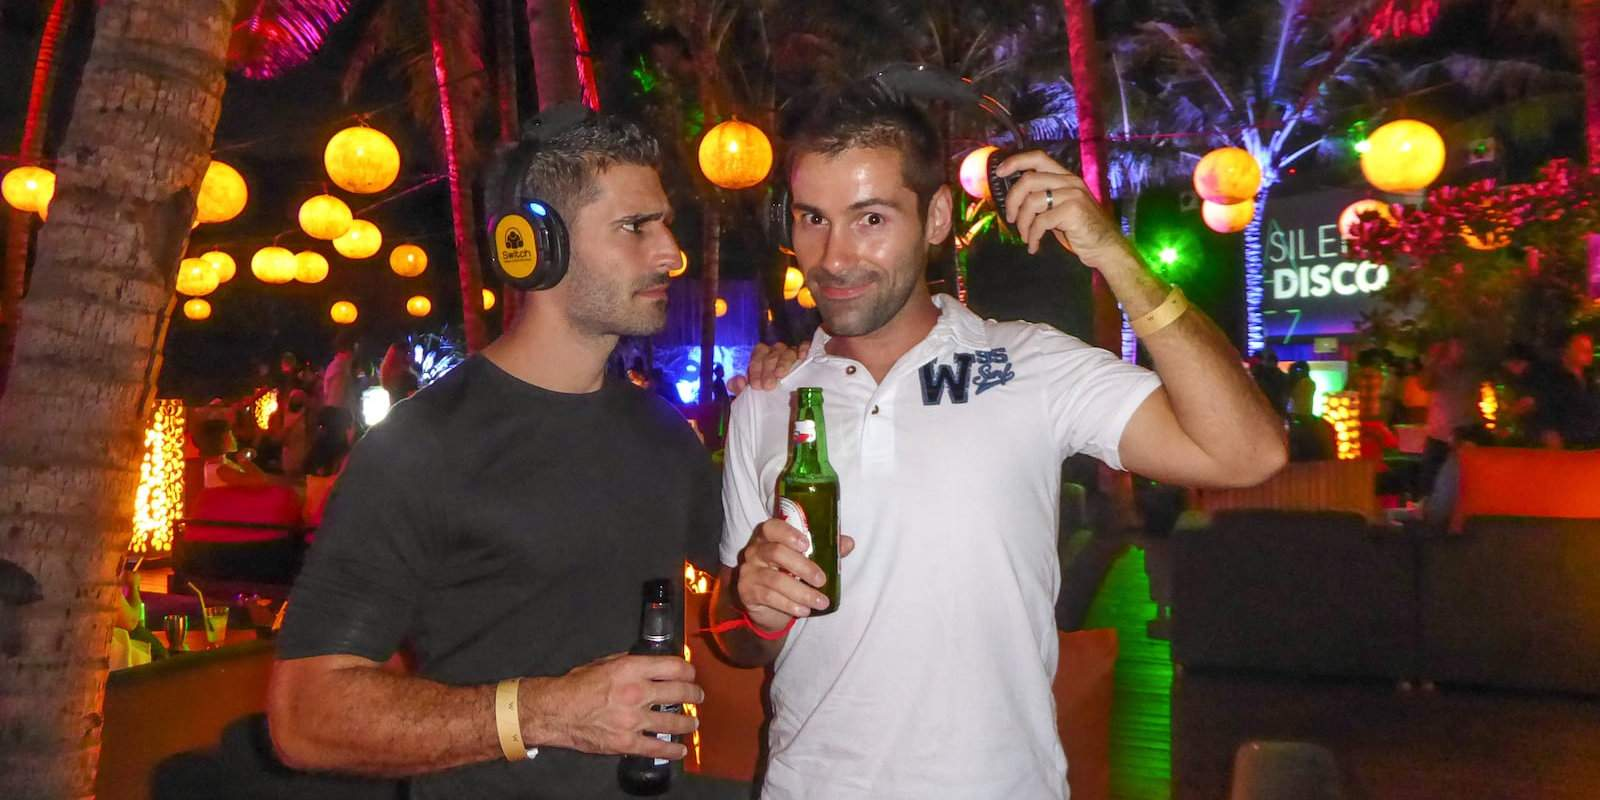 The W resort in Bali holds an annual silent disco which is a lot of fun!